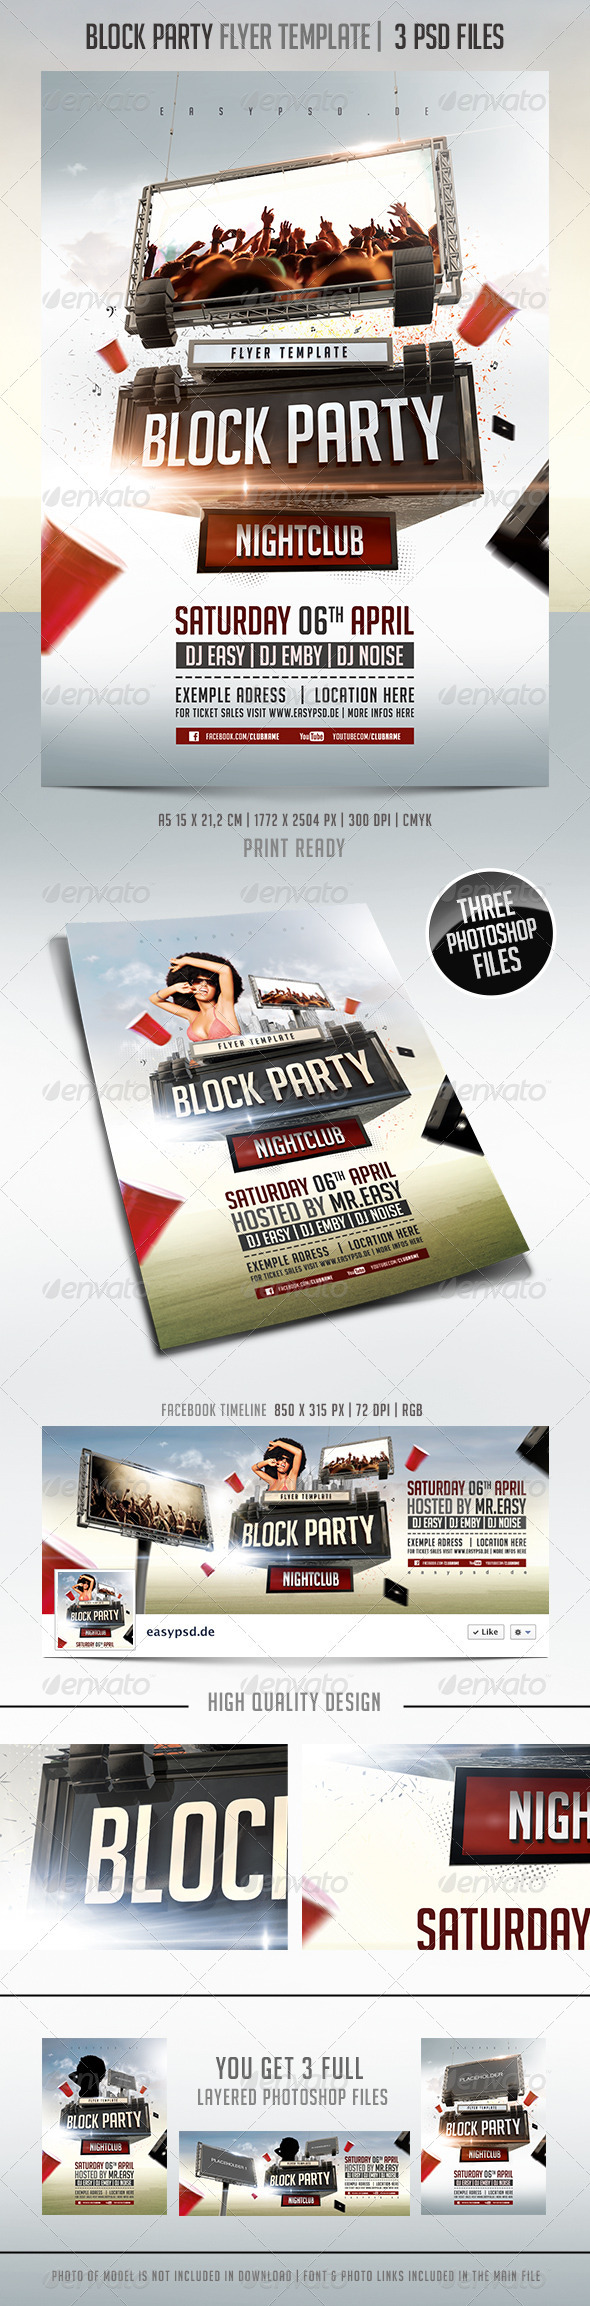 Block Party Flyer Template - Clubs & Parties Events